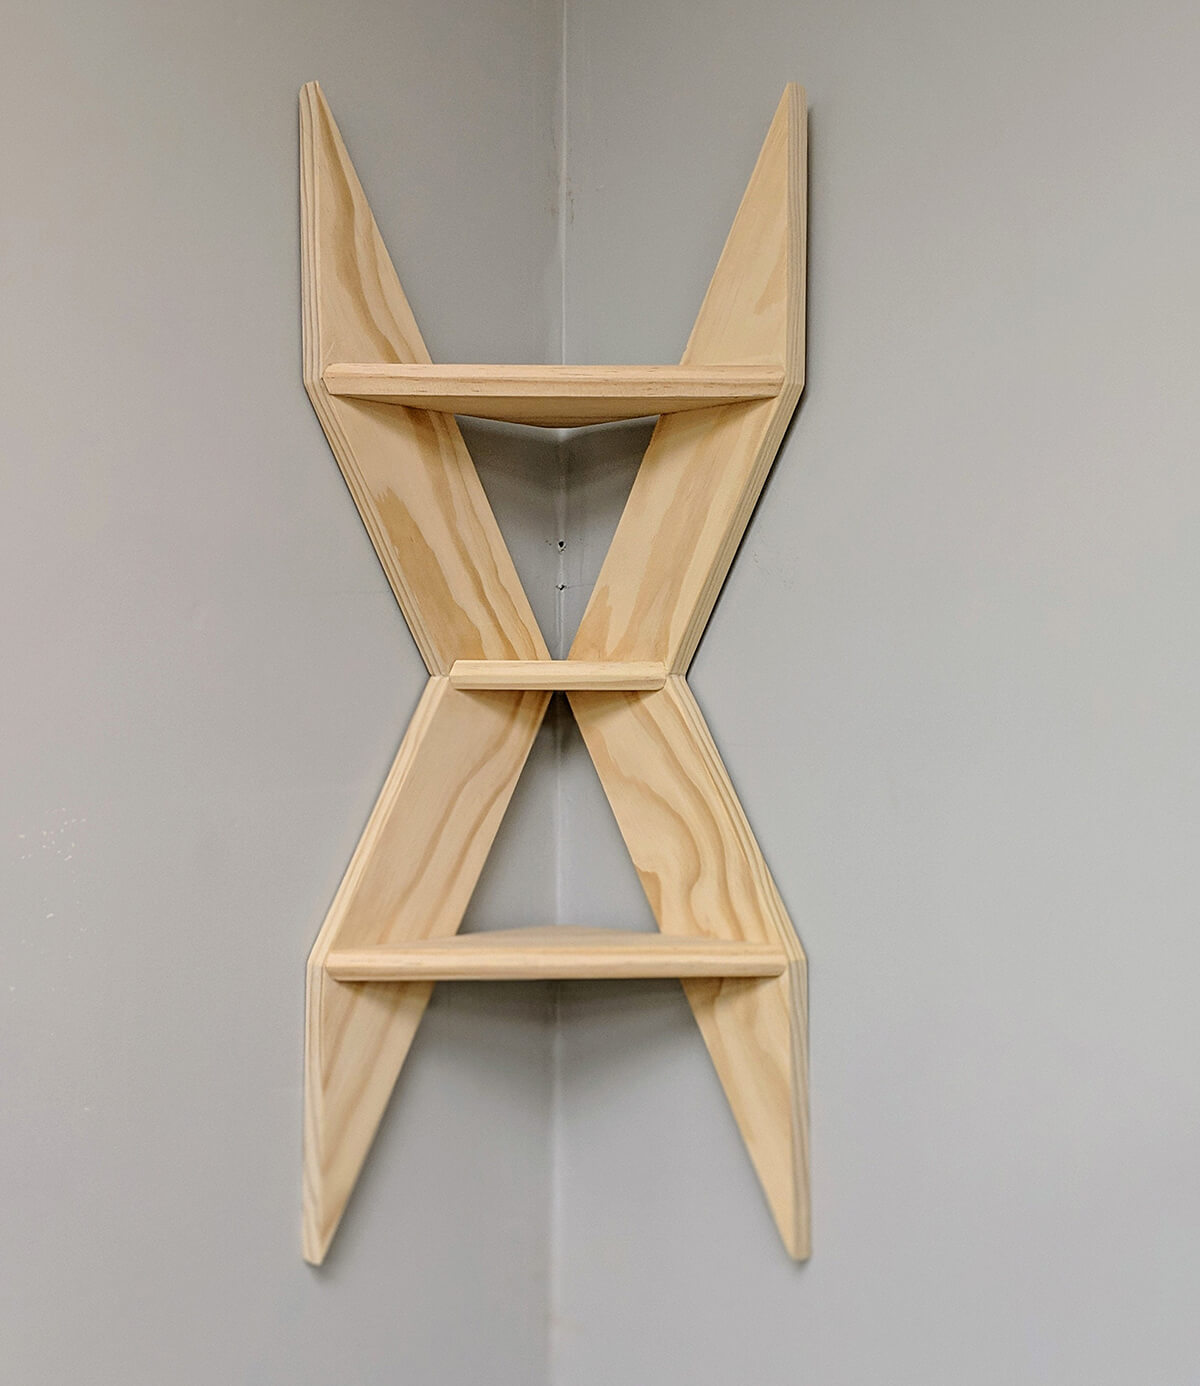 Cool X-Shaped Shelves DIY Art